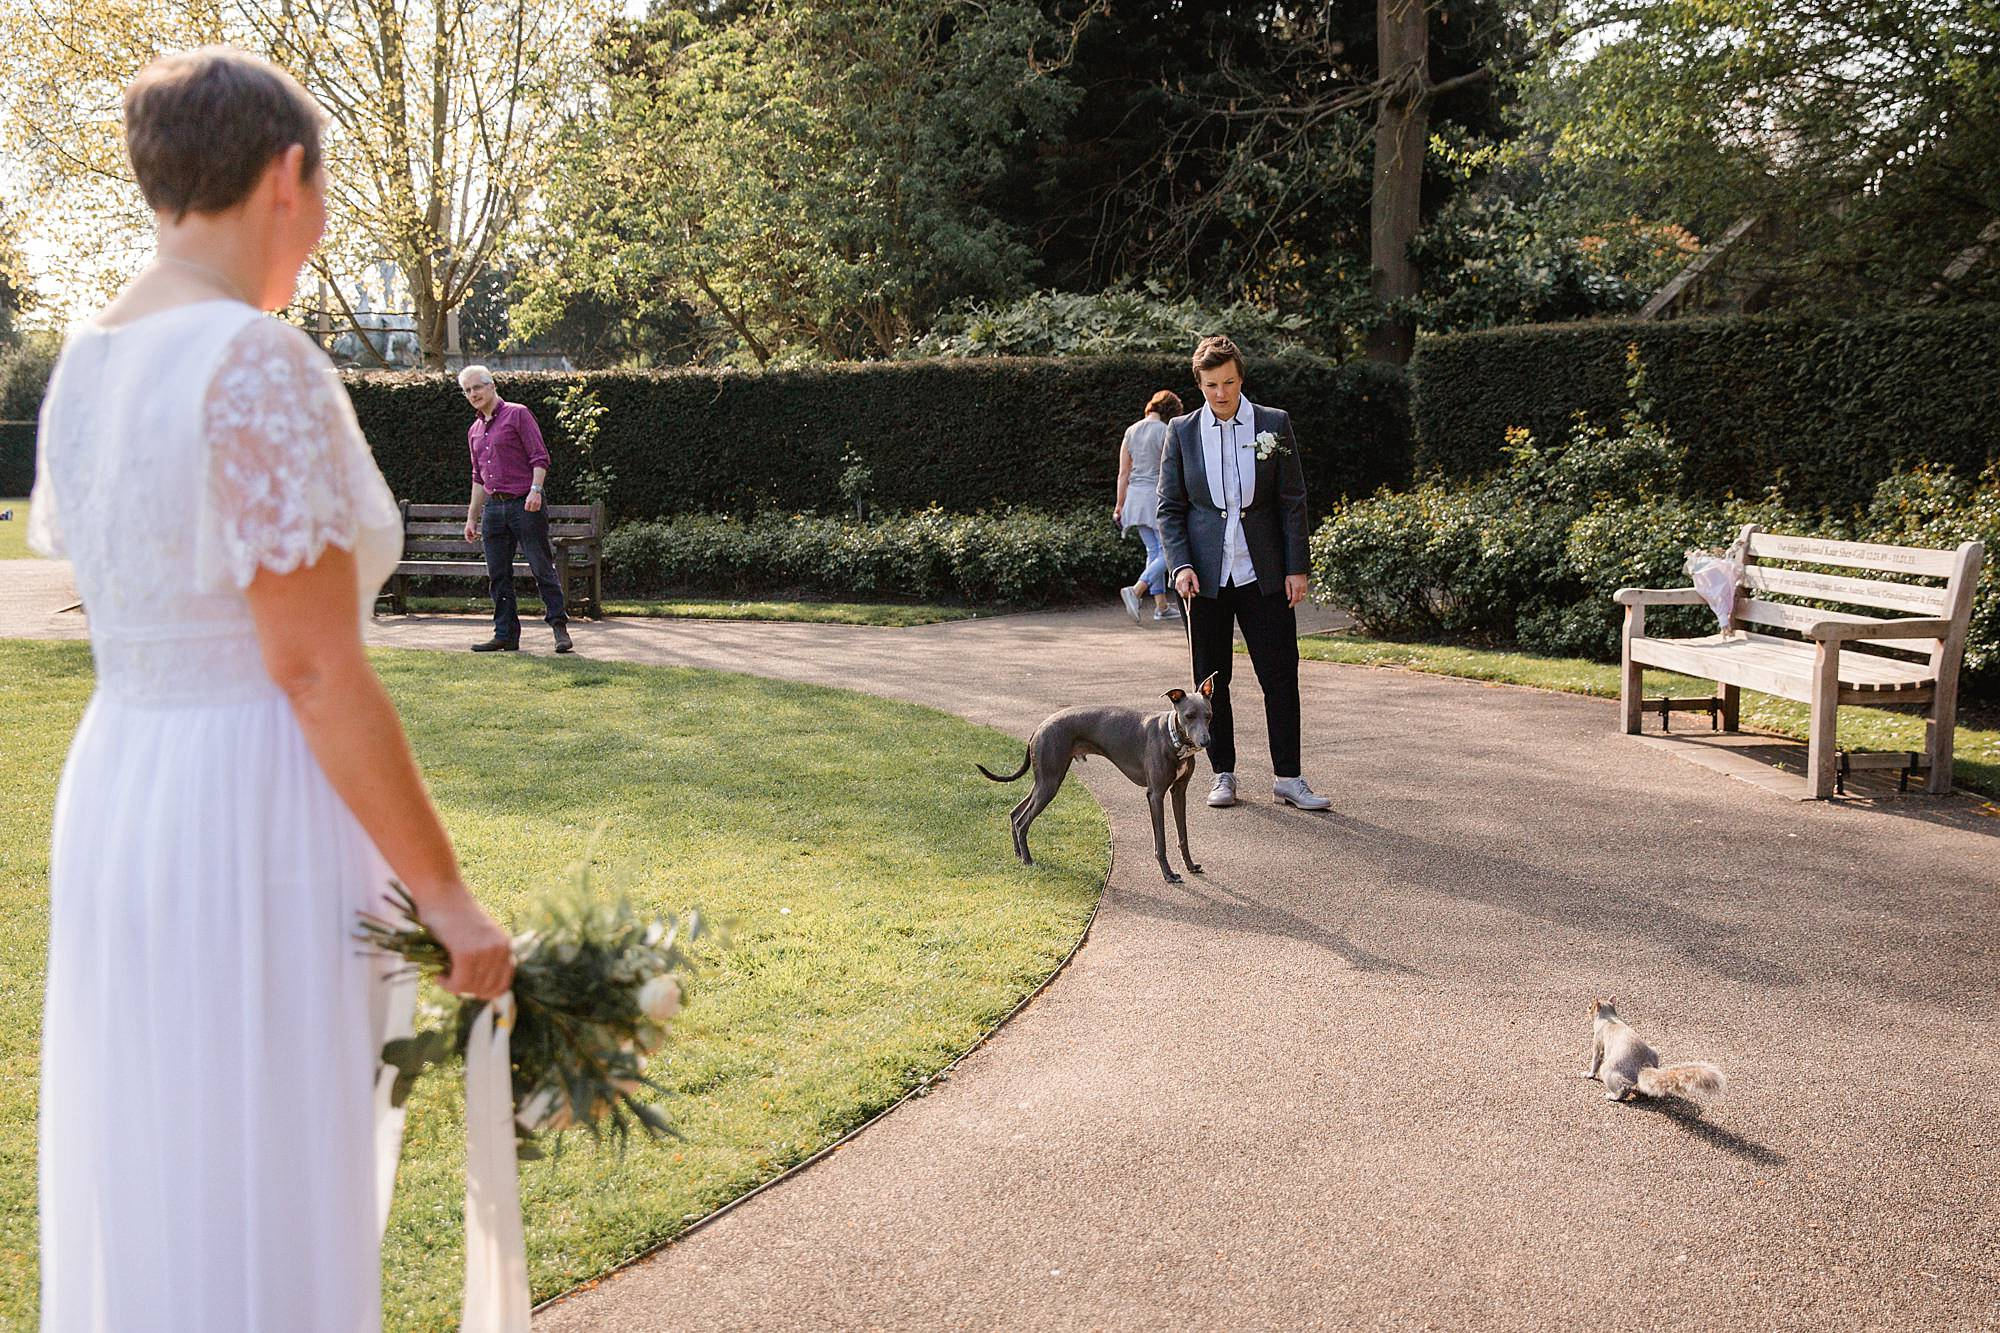 Twickenham wedding photography brides' whippet chasing squirrel